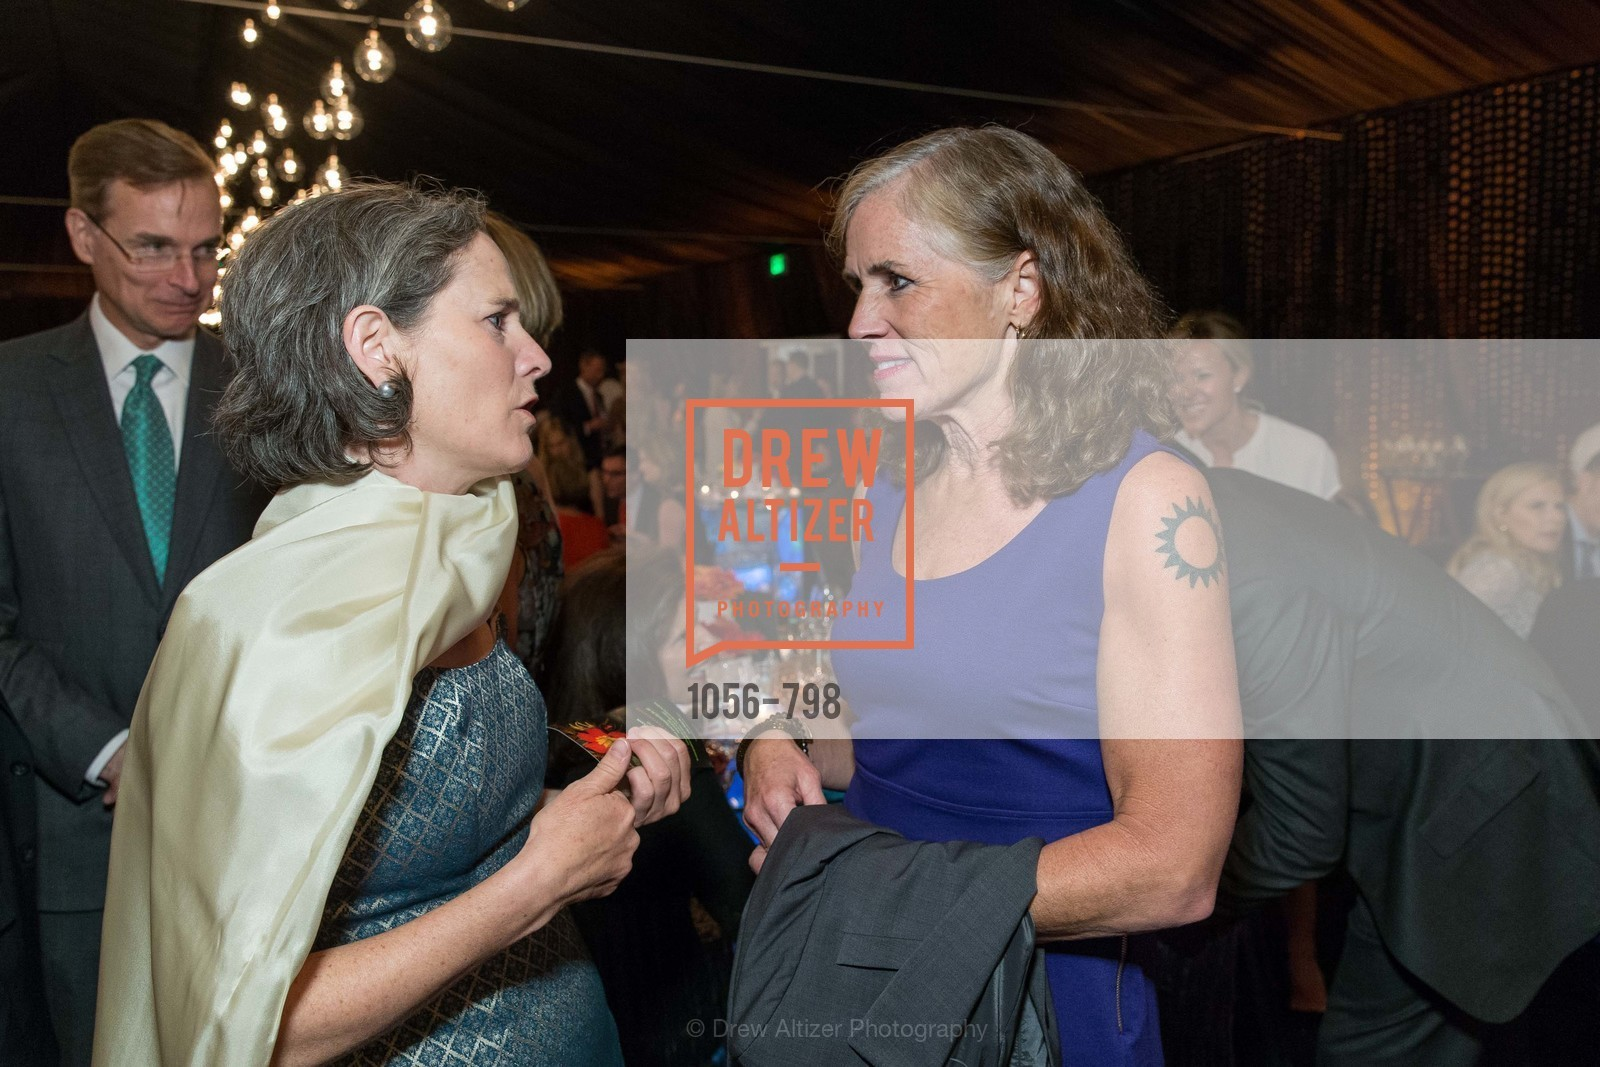 Liebe Patterson, Kat Taylor, CALIFORNIA ACADEMY OF SCIENCES - Big Bang Gala 2015, US, April 23rd, 2015,Drew Altizer, Drew Altizer Photography, full-service agency, private events, San Francisco photographer, photographer california